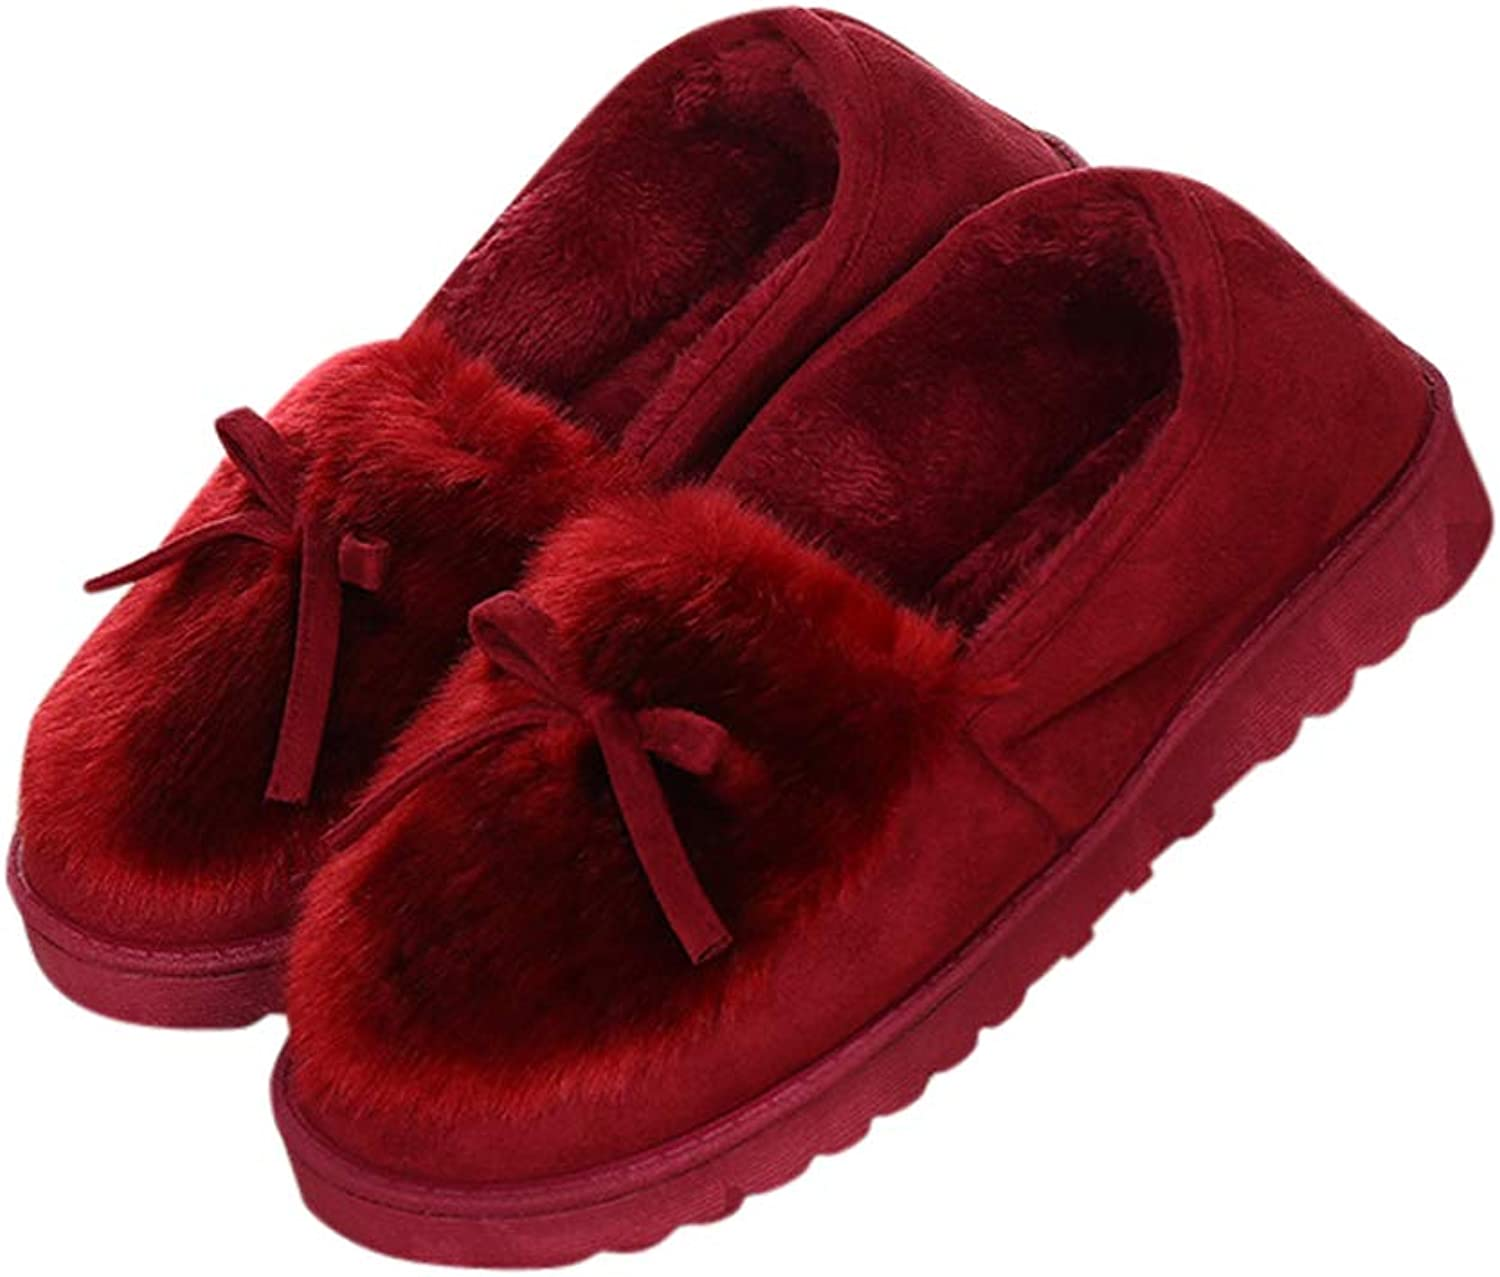 Baviue Womens Bowknot Fuzzy Cozy Casual Outdoor Indoor Moccasin Slippers